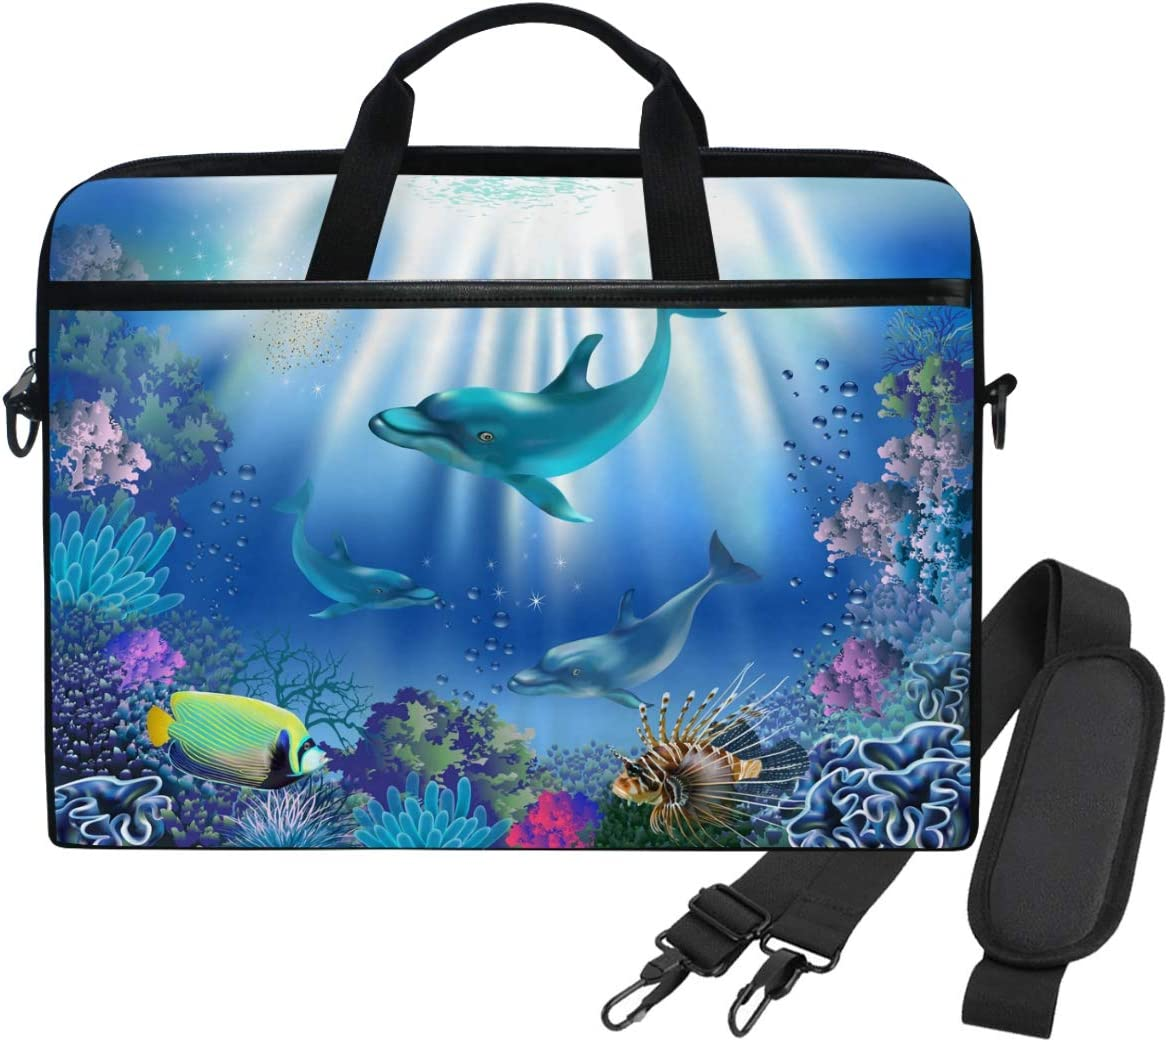 WIHVE 14 Inch Laptop Case Dolphin Underwater World Laptop Shoulder Bag Carrying Case with Strap for Women and Men